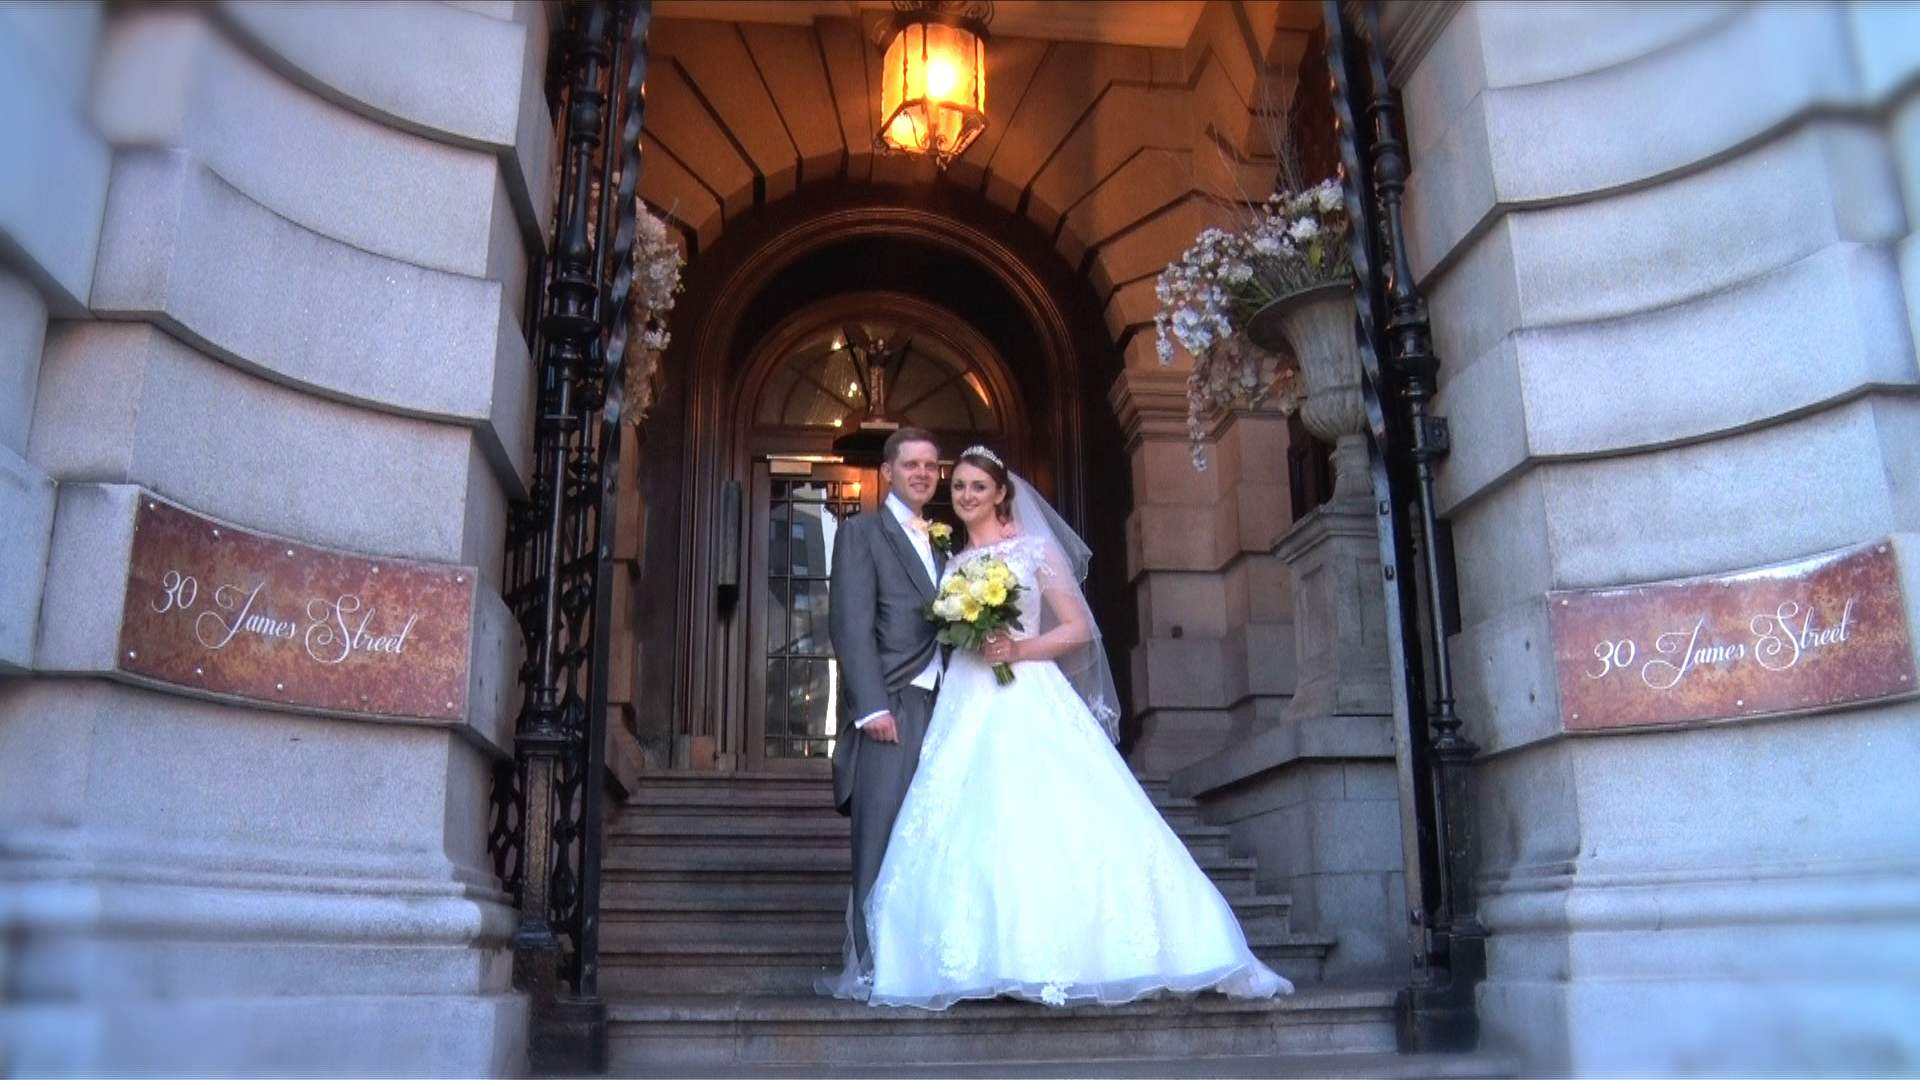 30 James Street wedding video